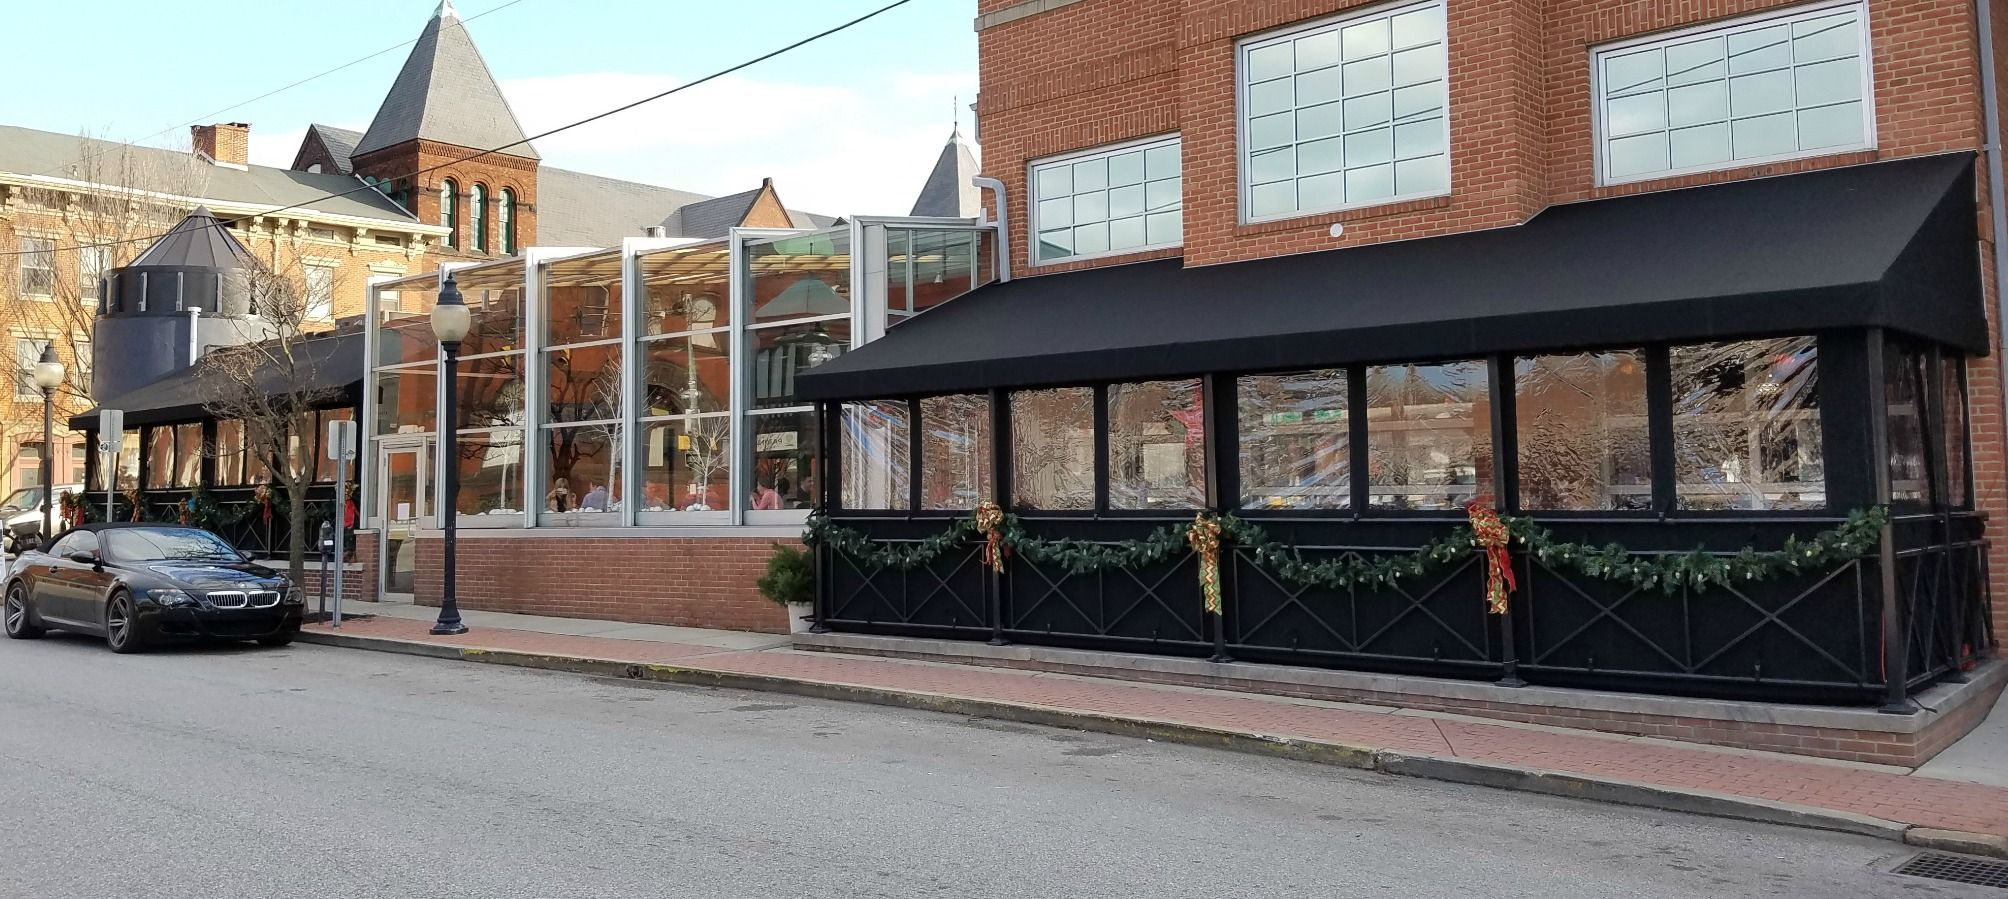 White Rose Bar And Grill York Pa Dining Canopies With Clear Vinyl Enclosure Kreider S Canvas Service Inc Rose Bar Bar Design Restaurant Restaurant Patio